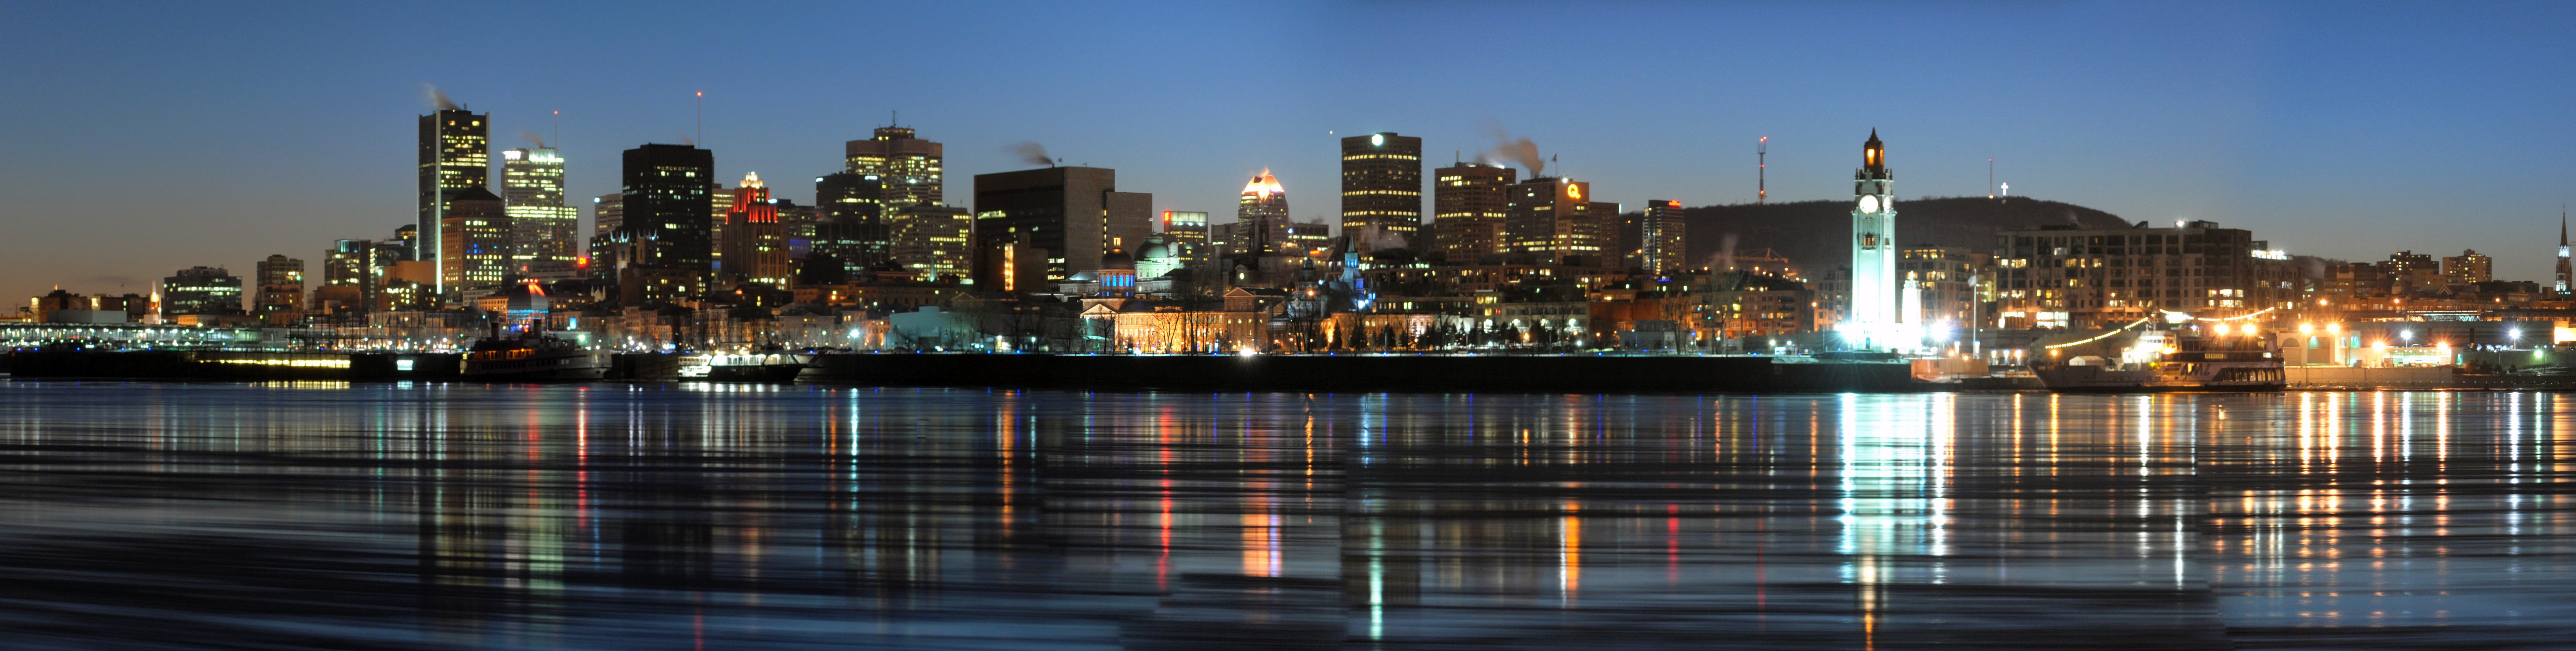 Hotels In Montreal Canada